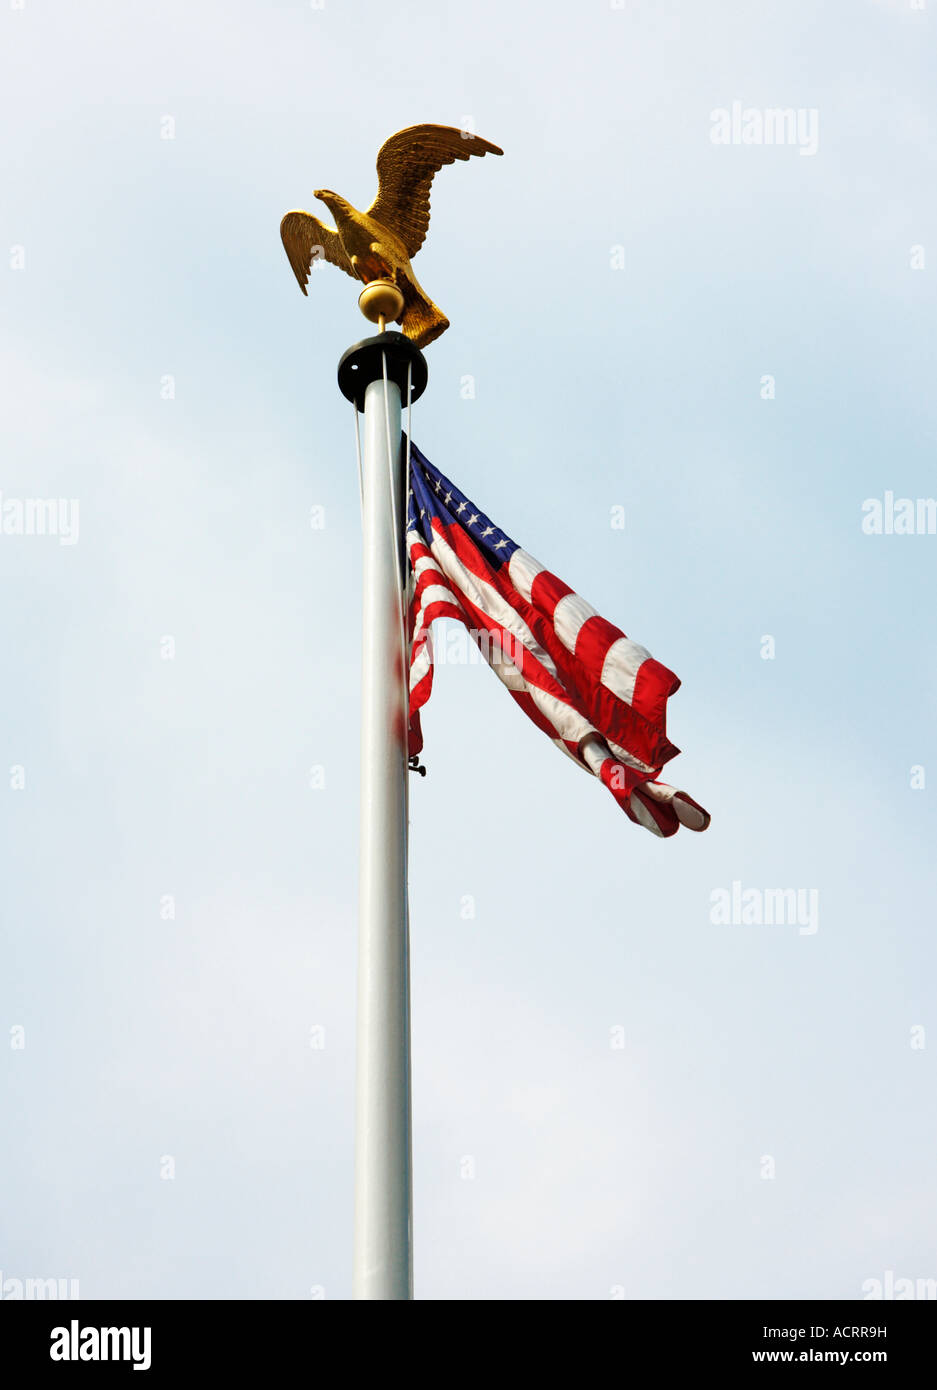 US flag and golden eagle sculpture on a flagpole - Stock Image